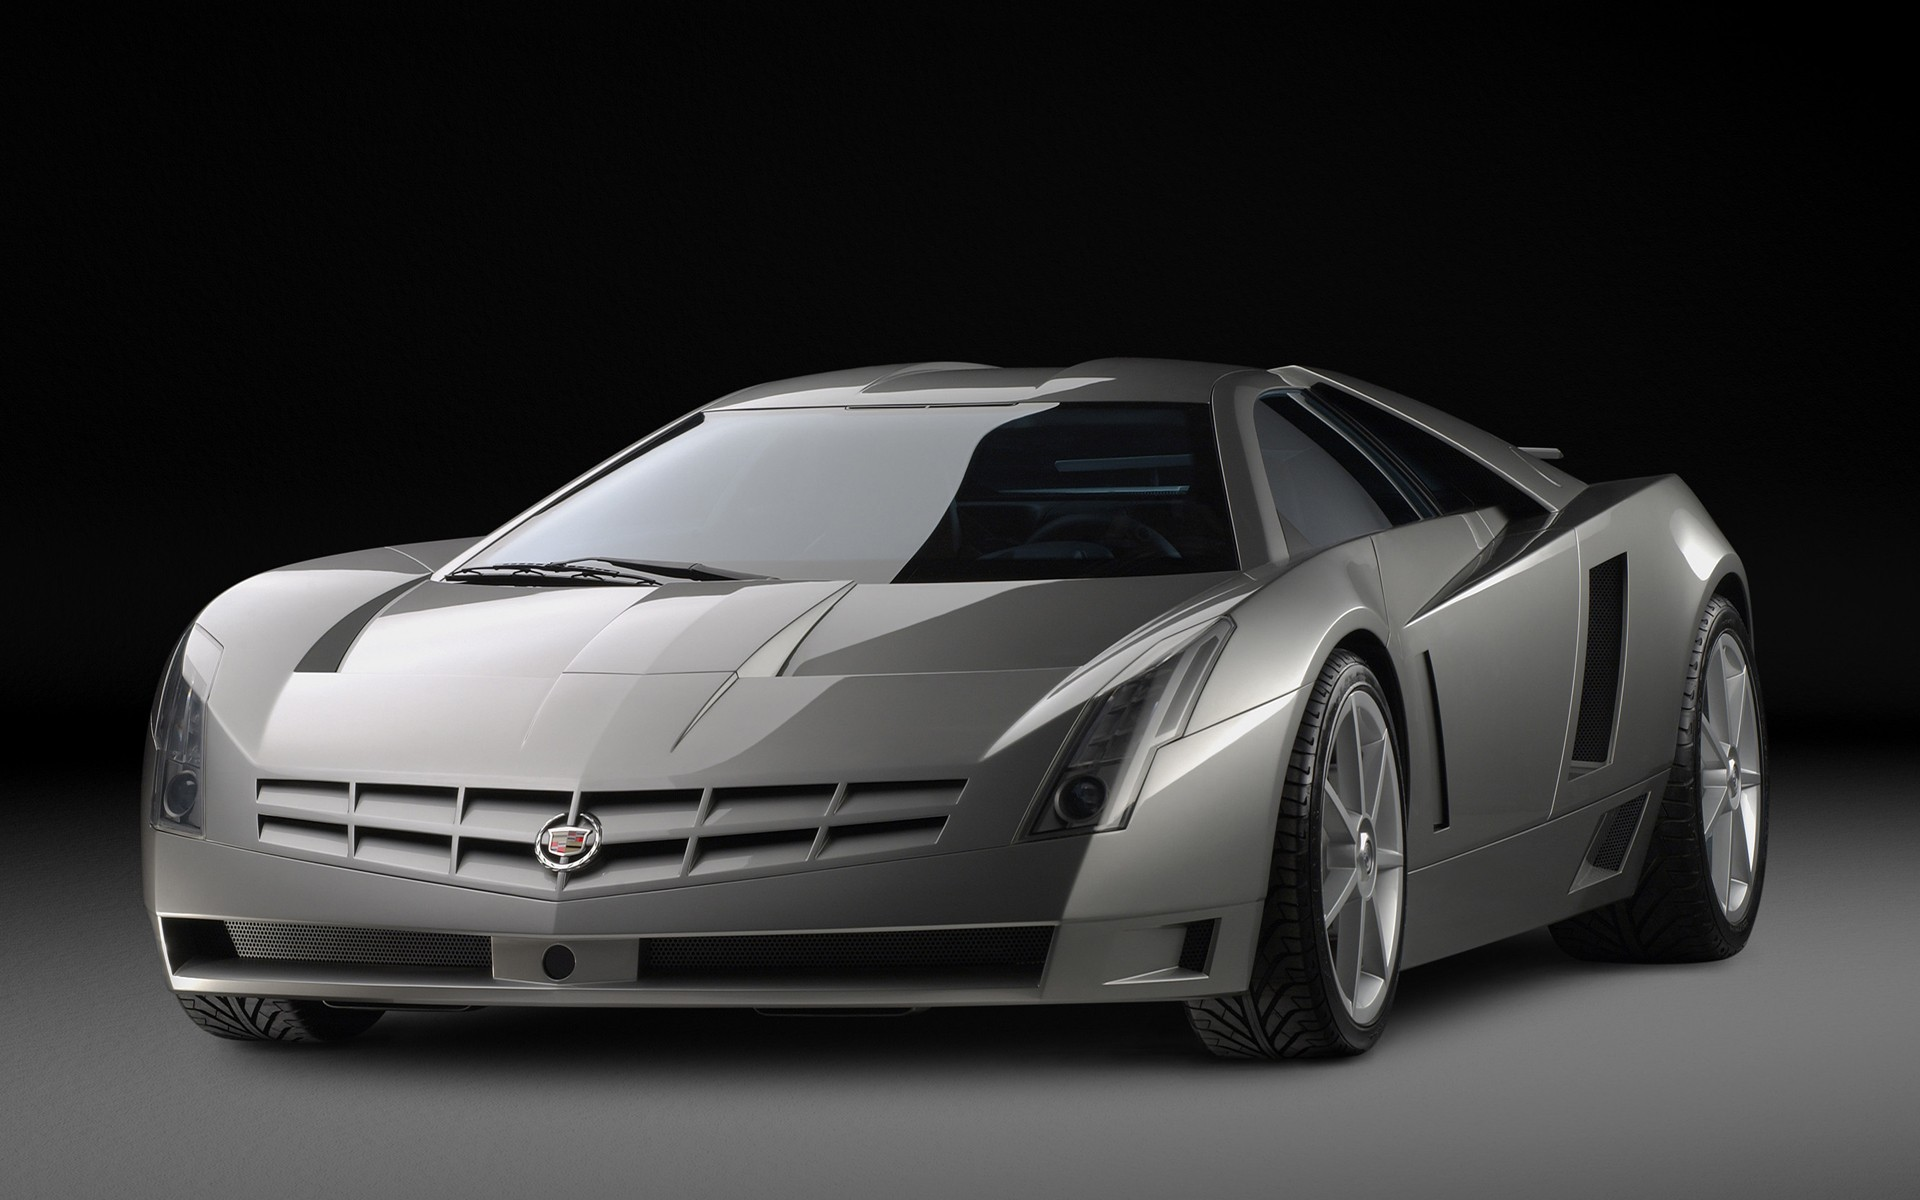 Could Cadillac's 2020 Plans Include a Hybrid Supercar? - The News Wheel